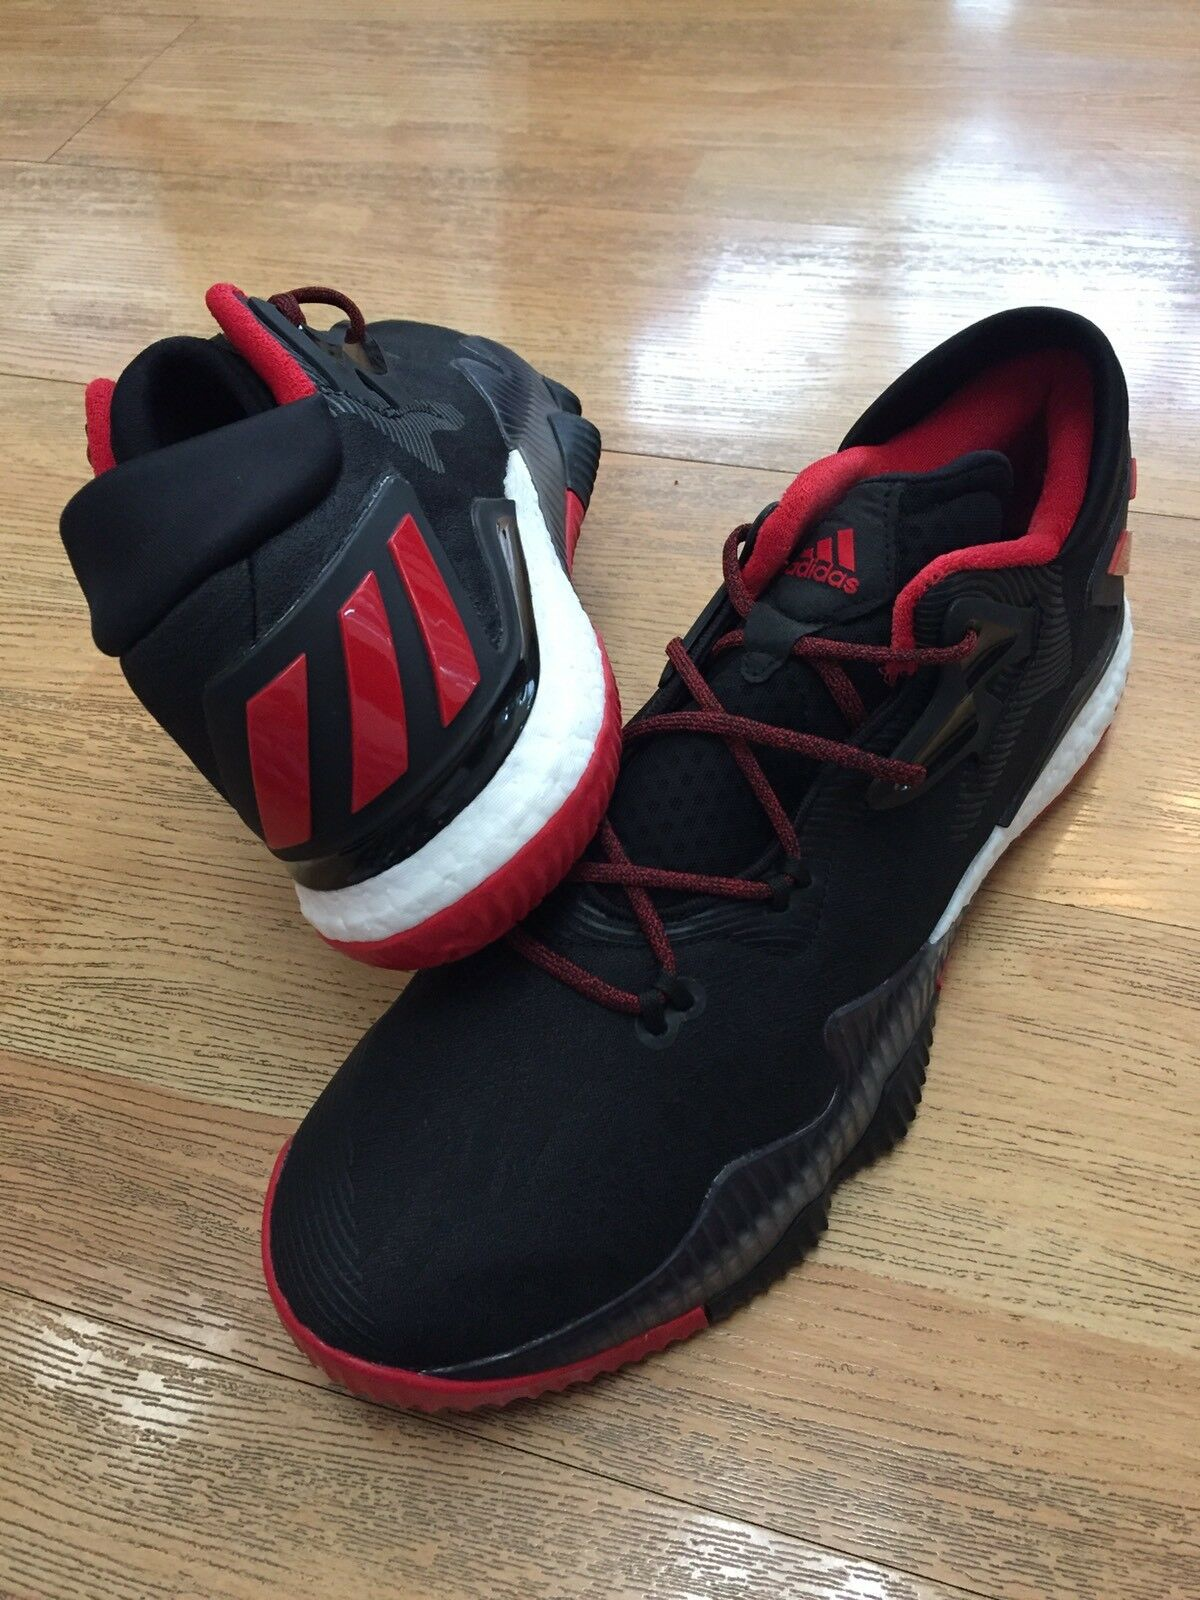 ADIDAS CRAZYLIGHT BOOST BASKETBALL JAMES JAMES JAMES HARDEN SZ 14 ROCKETS PE COLOR NBA SHOES f56722